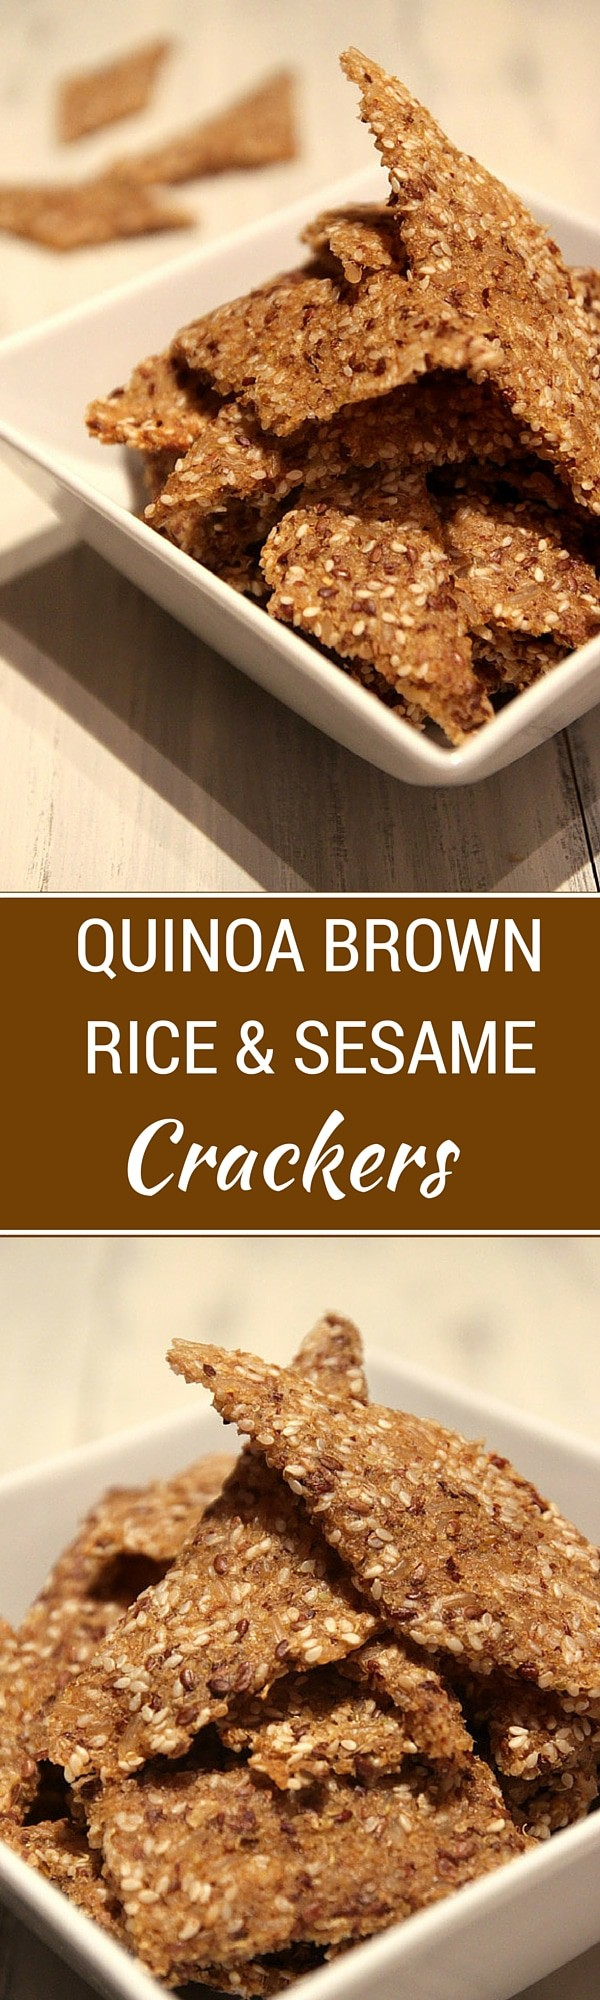 Quinoa Brown Rice Sesame Crackers - These easy to make crackers are packed with nutrients - brown rice, quinoa, sesame seeds and flax!  A great way to save money while sticking to your healthy eating plans. - WendyPolisi.com